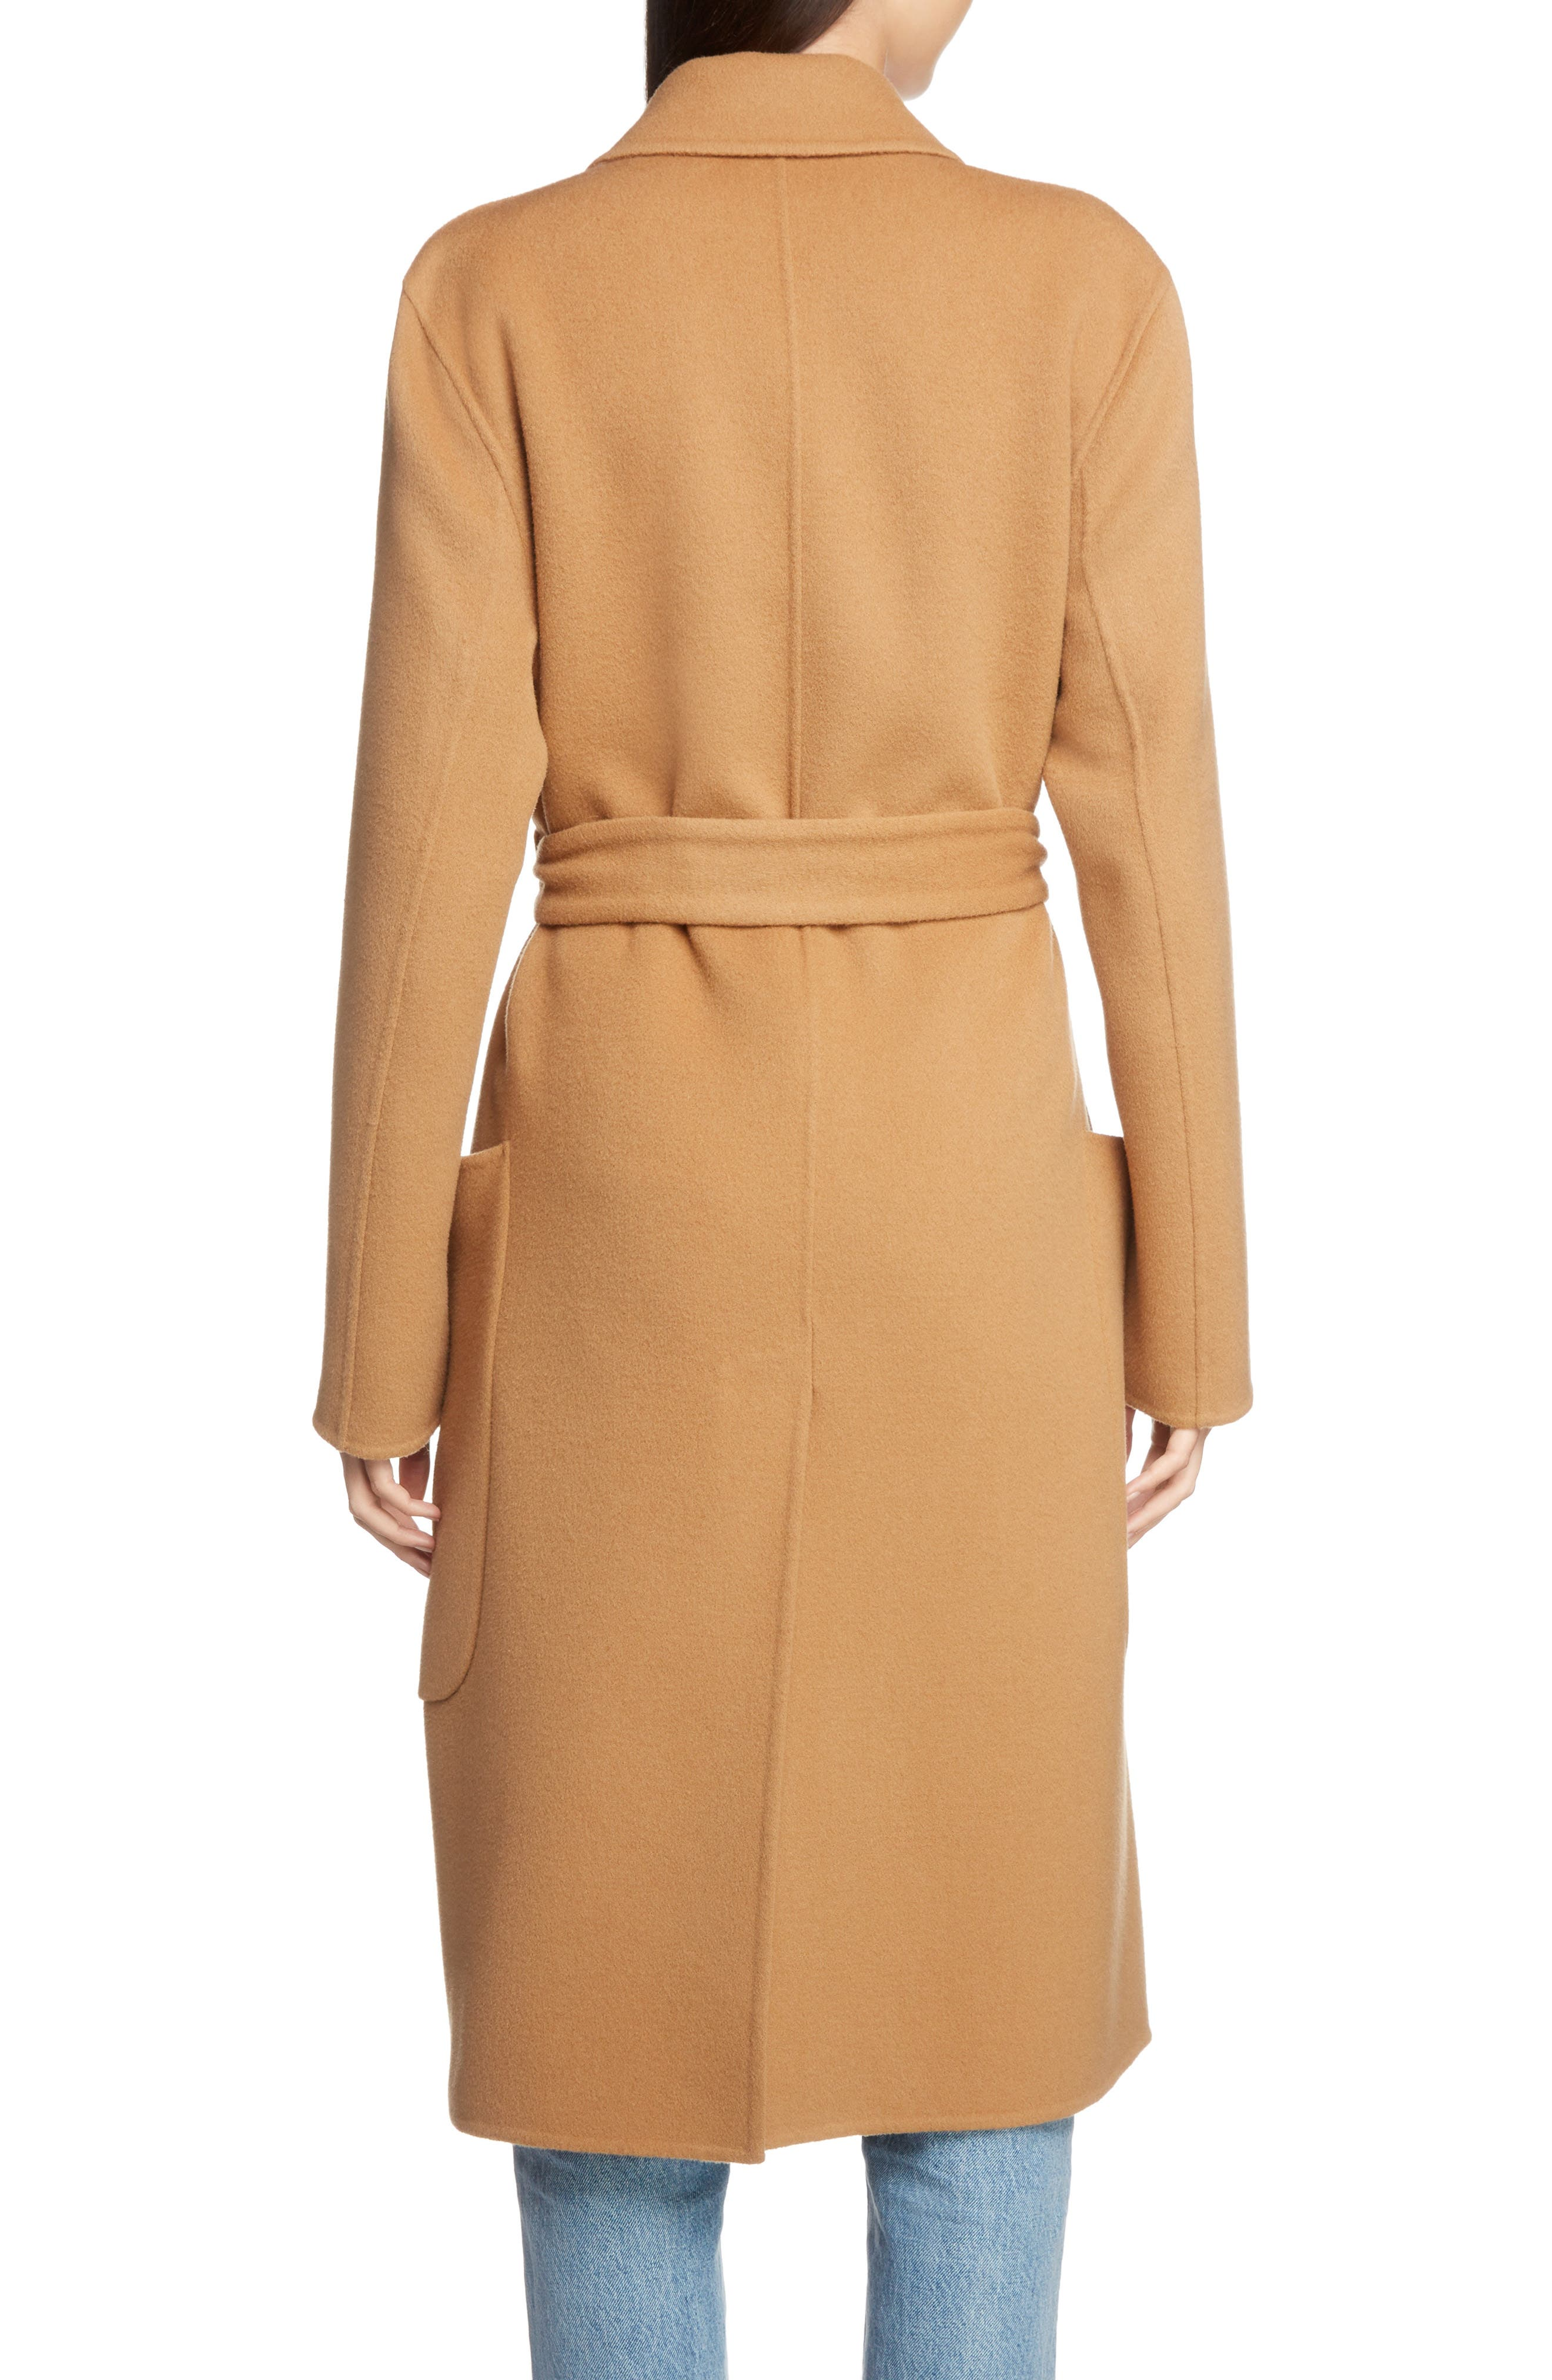 Belted Double Wool & Cashmere Coat,                             Alternate thumbnail 2, color,                             CAMEL BROWN